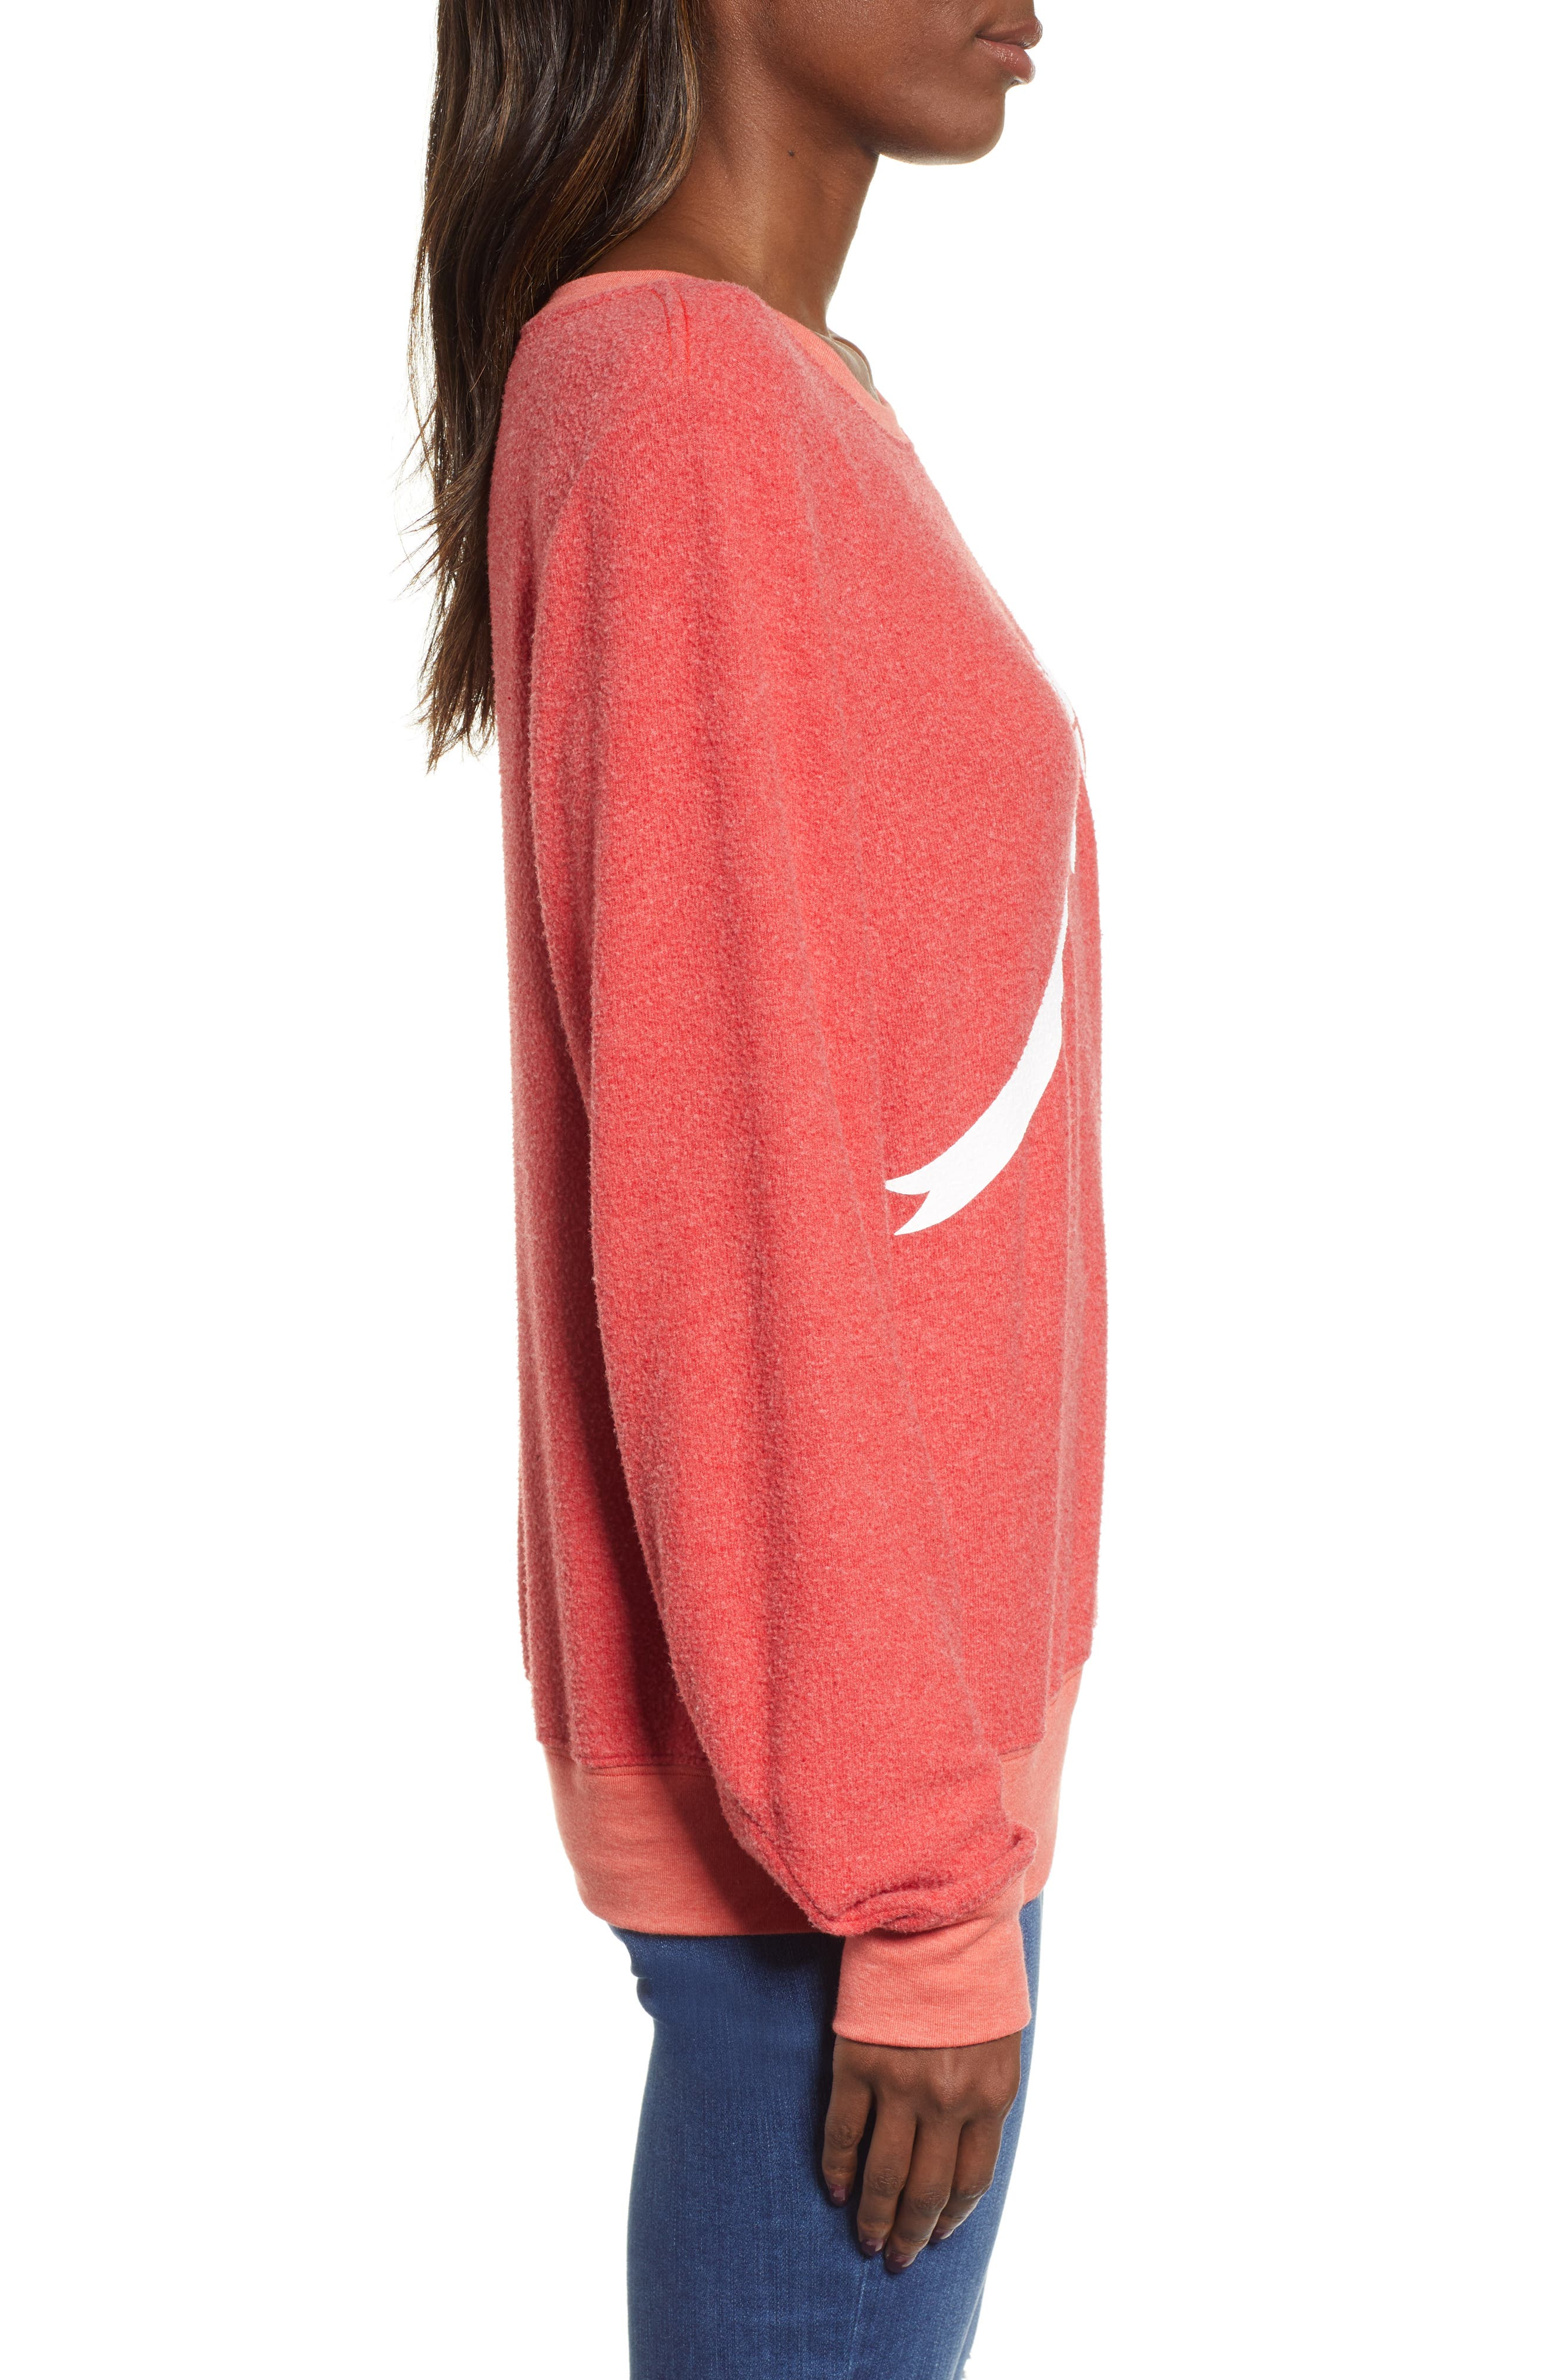 Gift Wrapped Sweatshirt,                             Alternate thumbnail 3, color,                             SCARLET